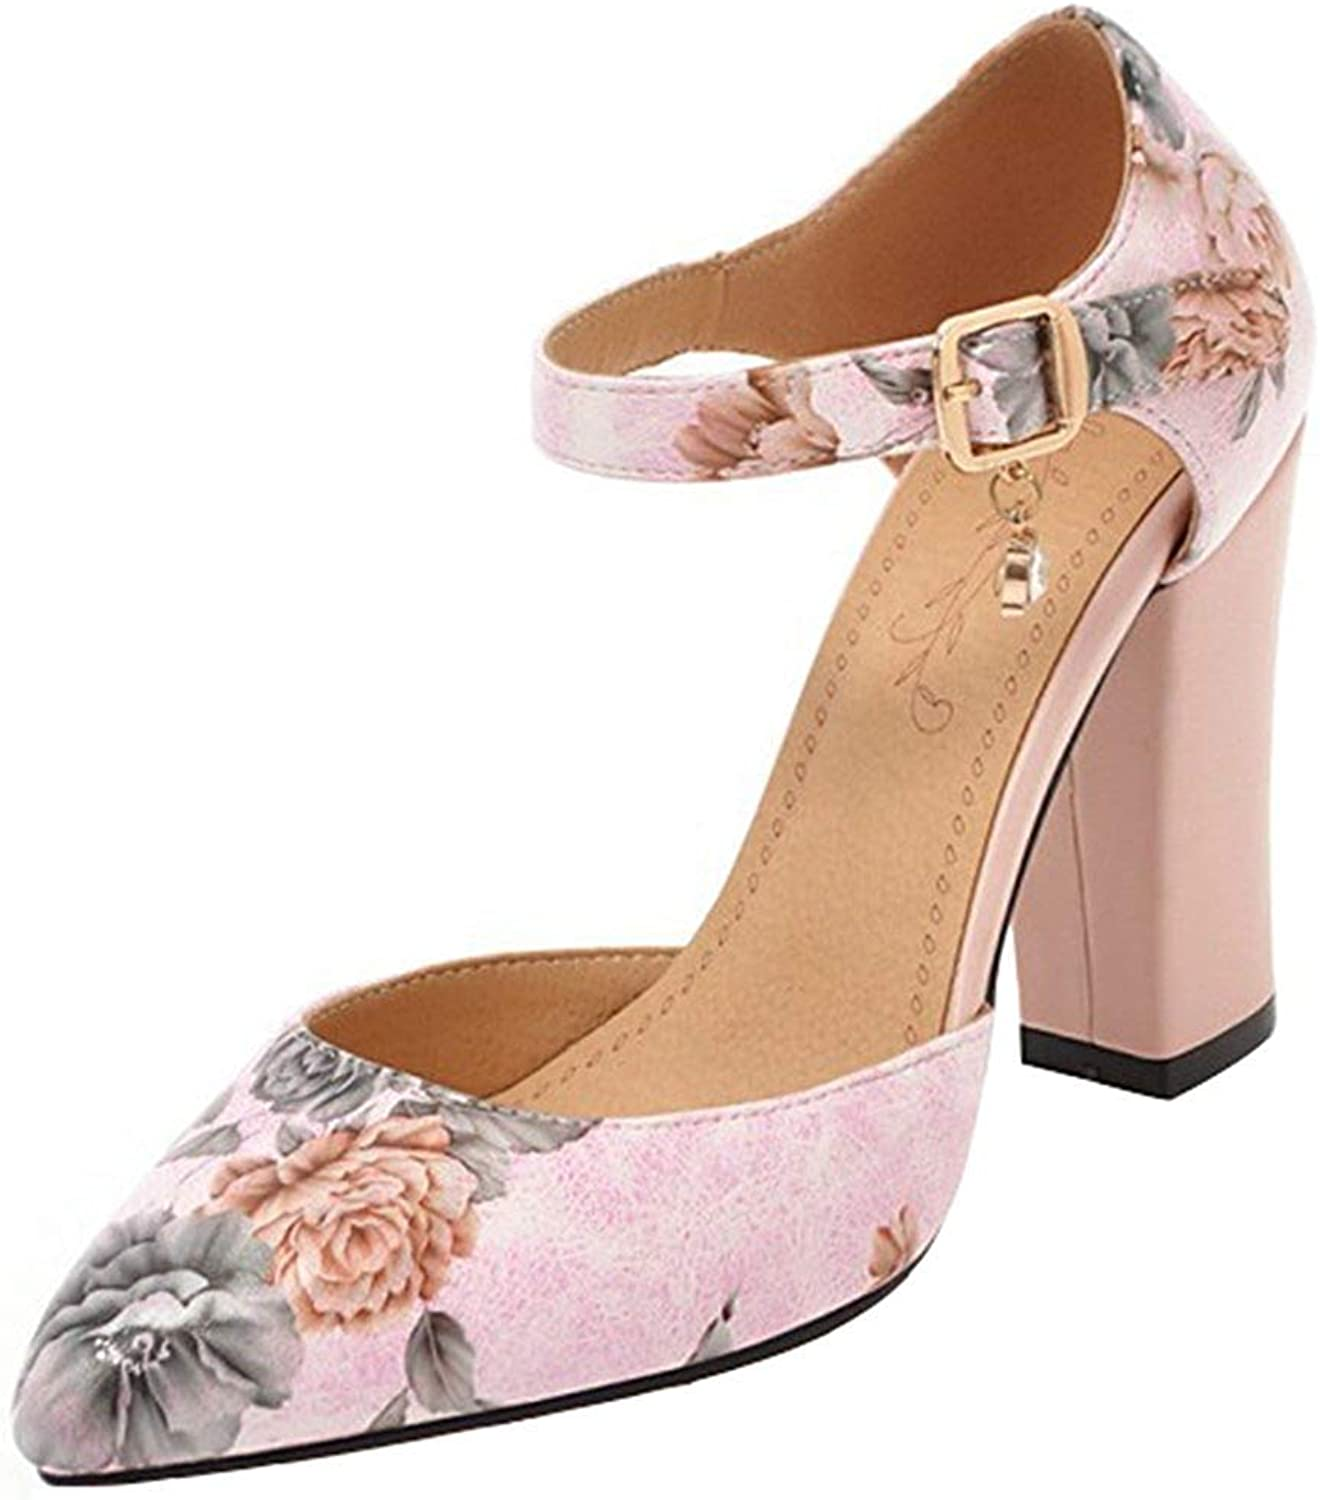 Ghssheh Women's Fashion Floral Print Buckle Ankle Strap Pointed Toe Block High Heels Sandals White 4 M US